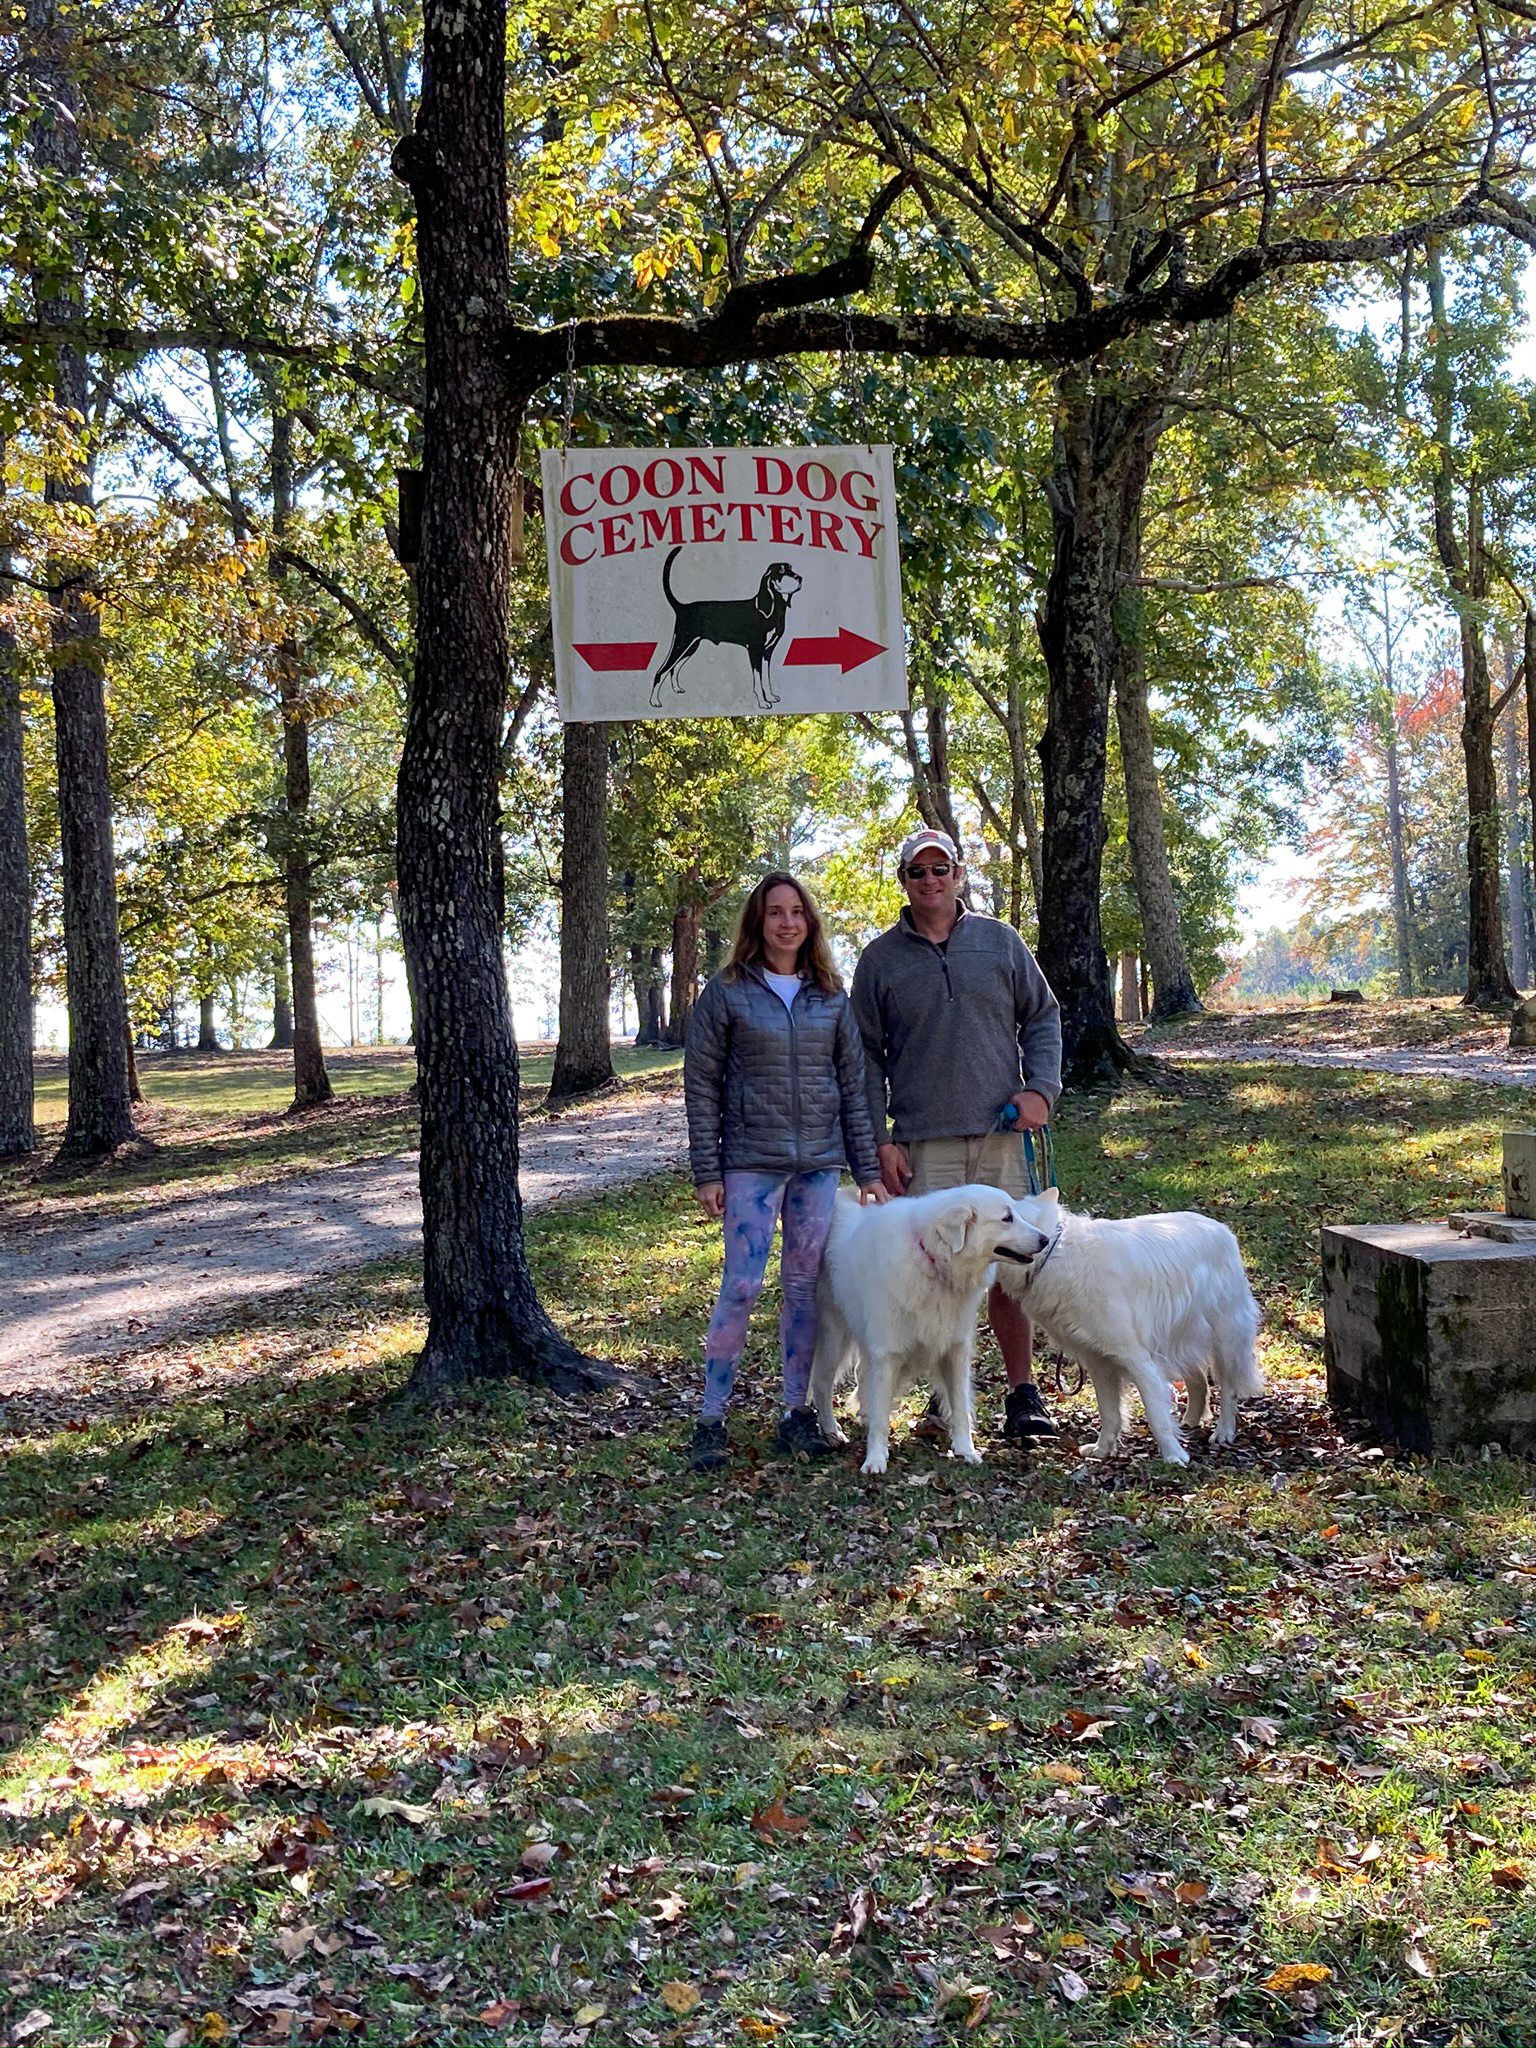 Coon Dog Cemetery near the Natchez Trace Parkway